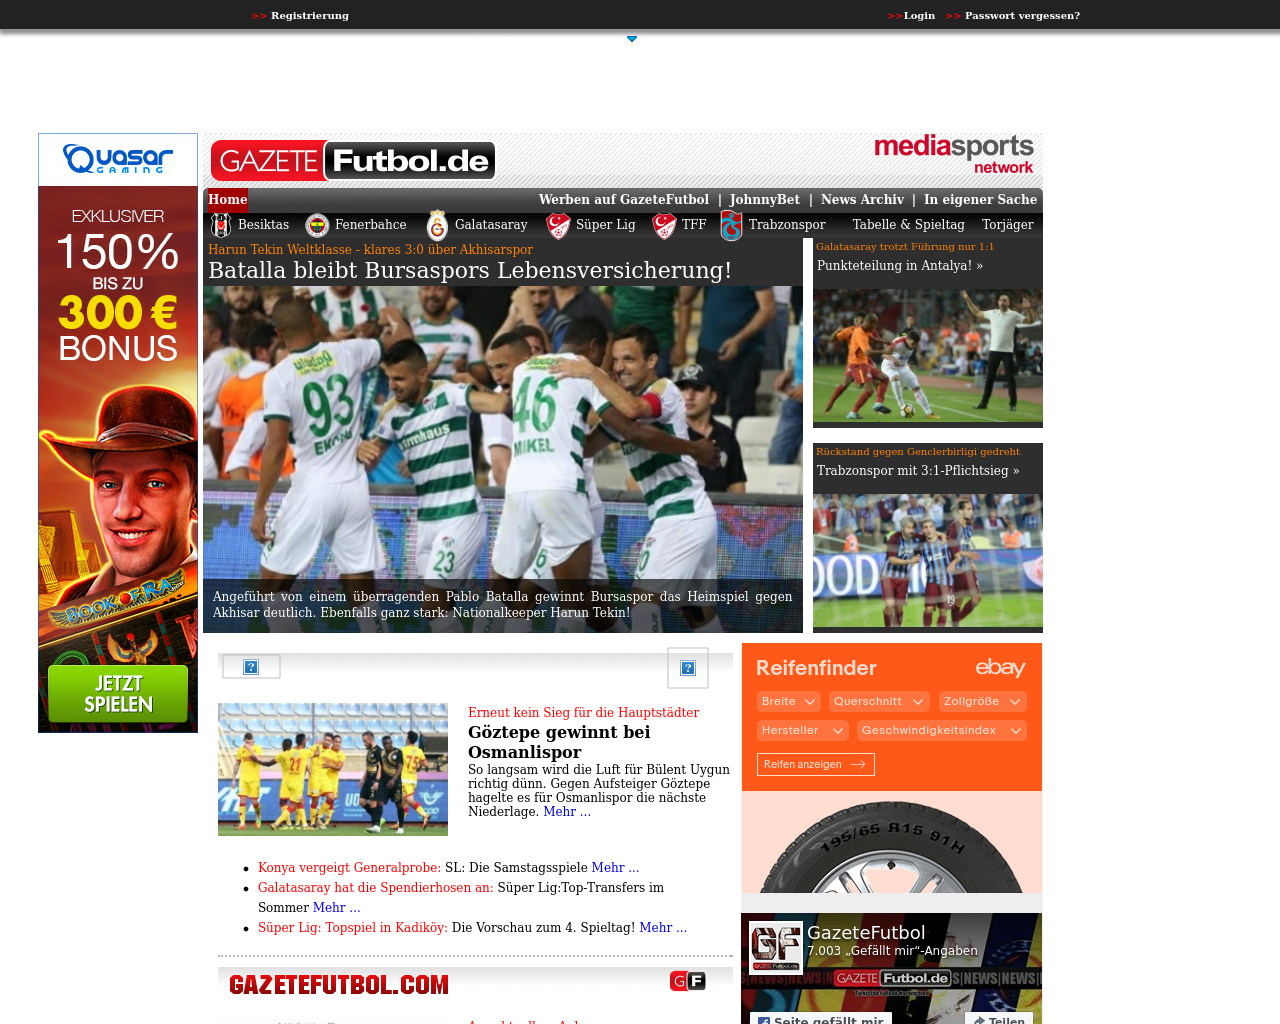 GazeteFutbol-Advertising-Reviews-Pricing